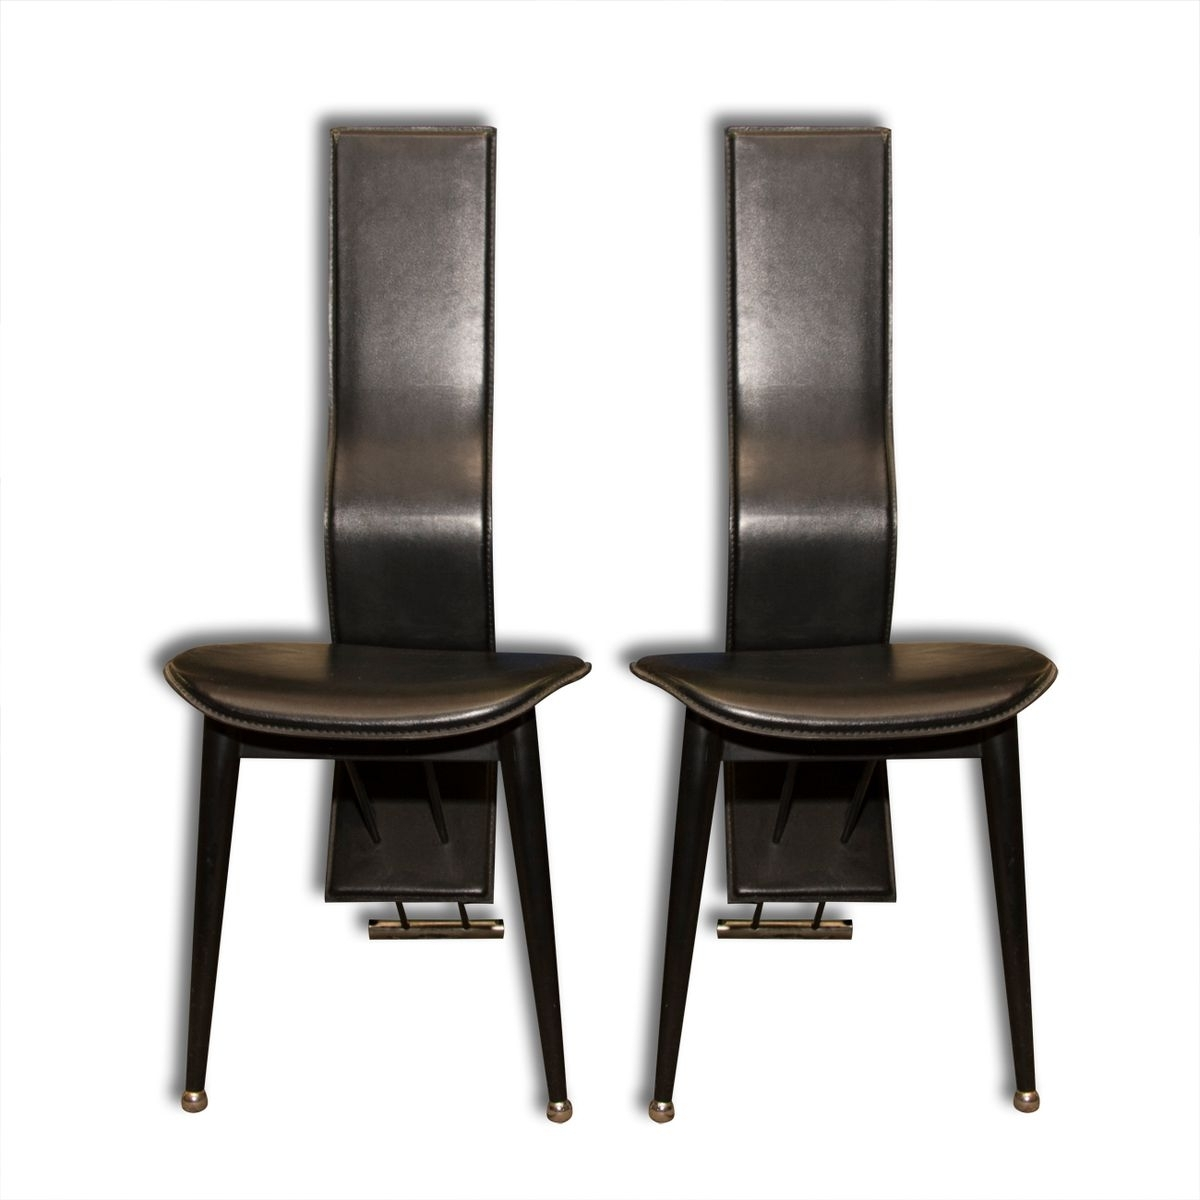 Popular Italian Vintage High Back Leather Dining Chairs, 1980S, Set Of 2 For Inside High Back Leather Dining Chairs (View 15 of 25)